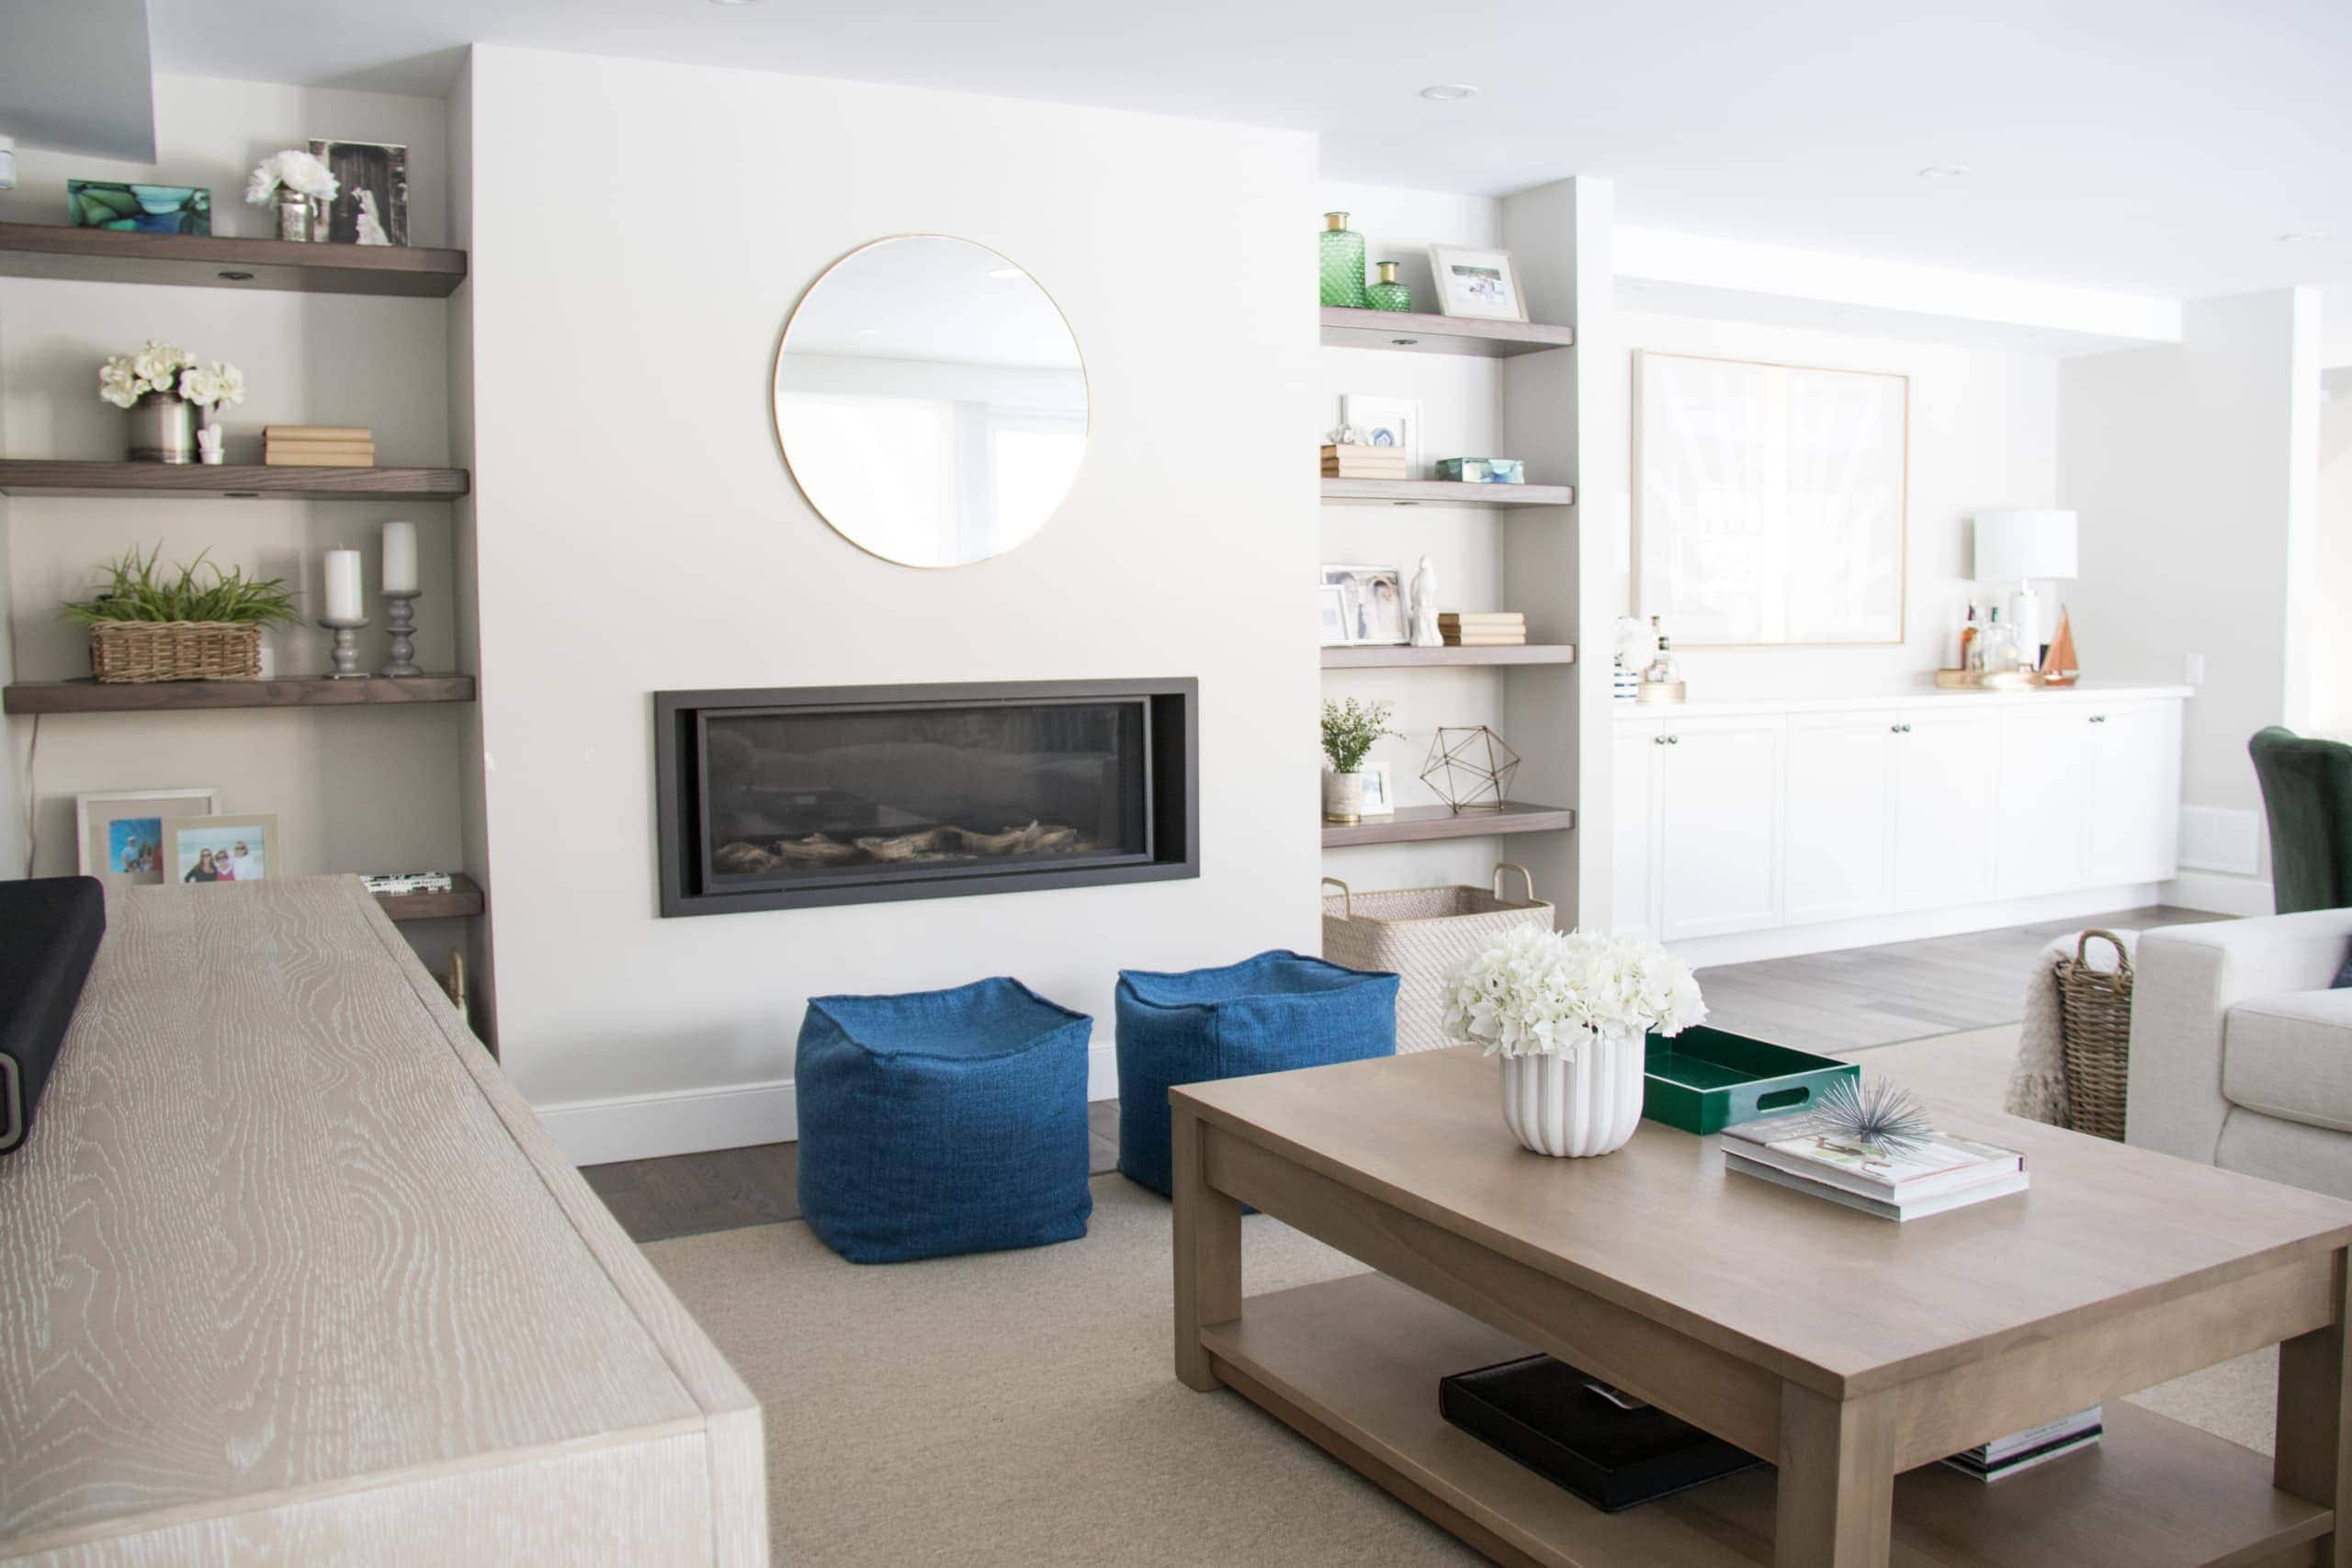 Bright living room containing blue seats in front of the fireplace